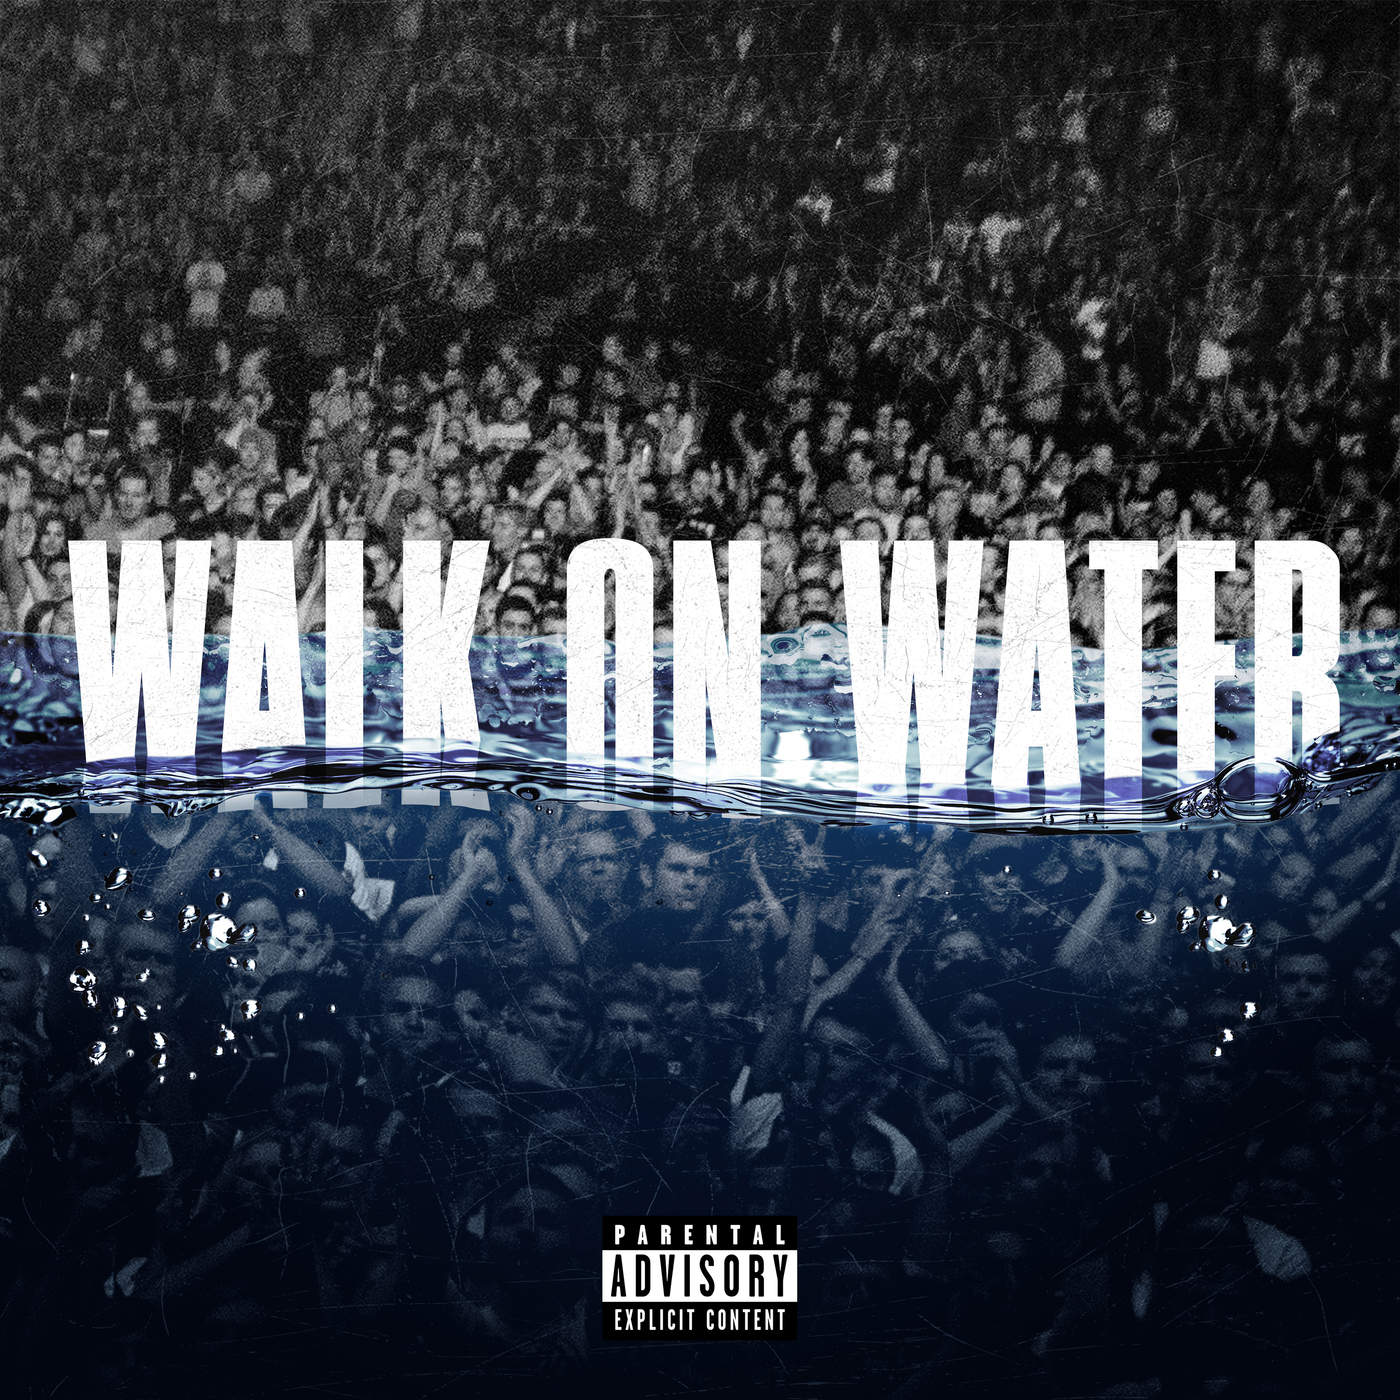 Eminem releases song 'Walk on Water' featuring Beyoncé